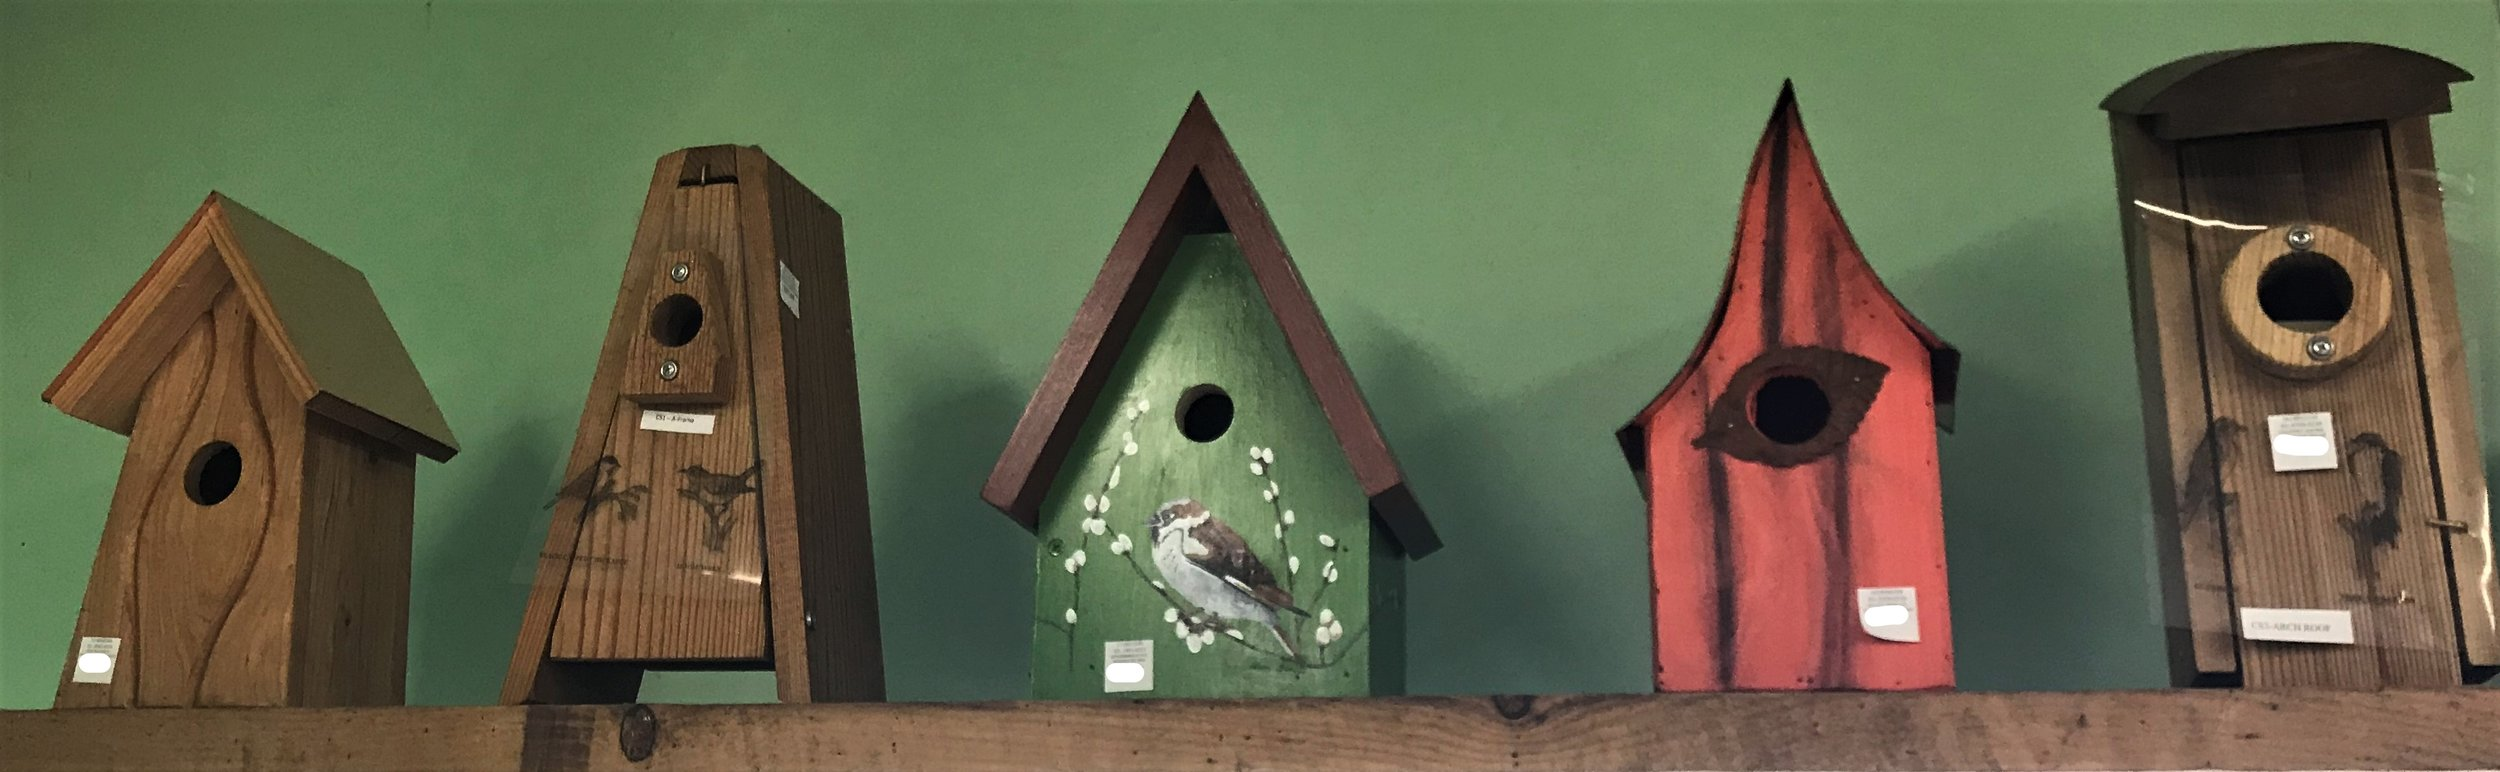 We've got birdhouses that are decorative and practical!